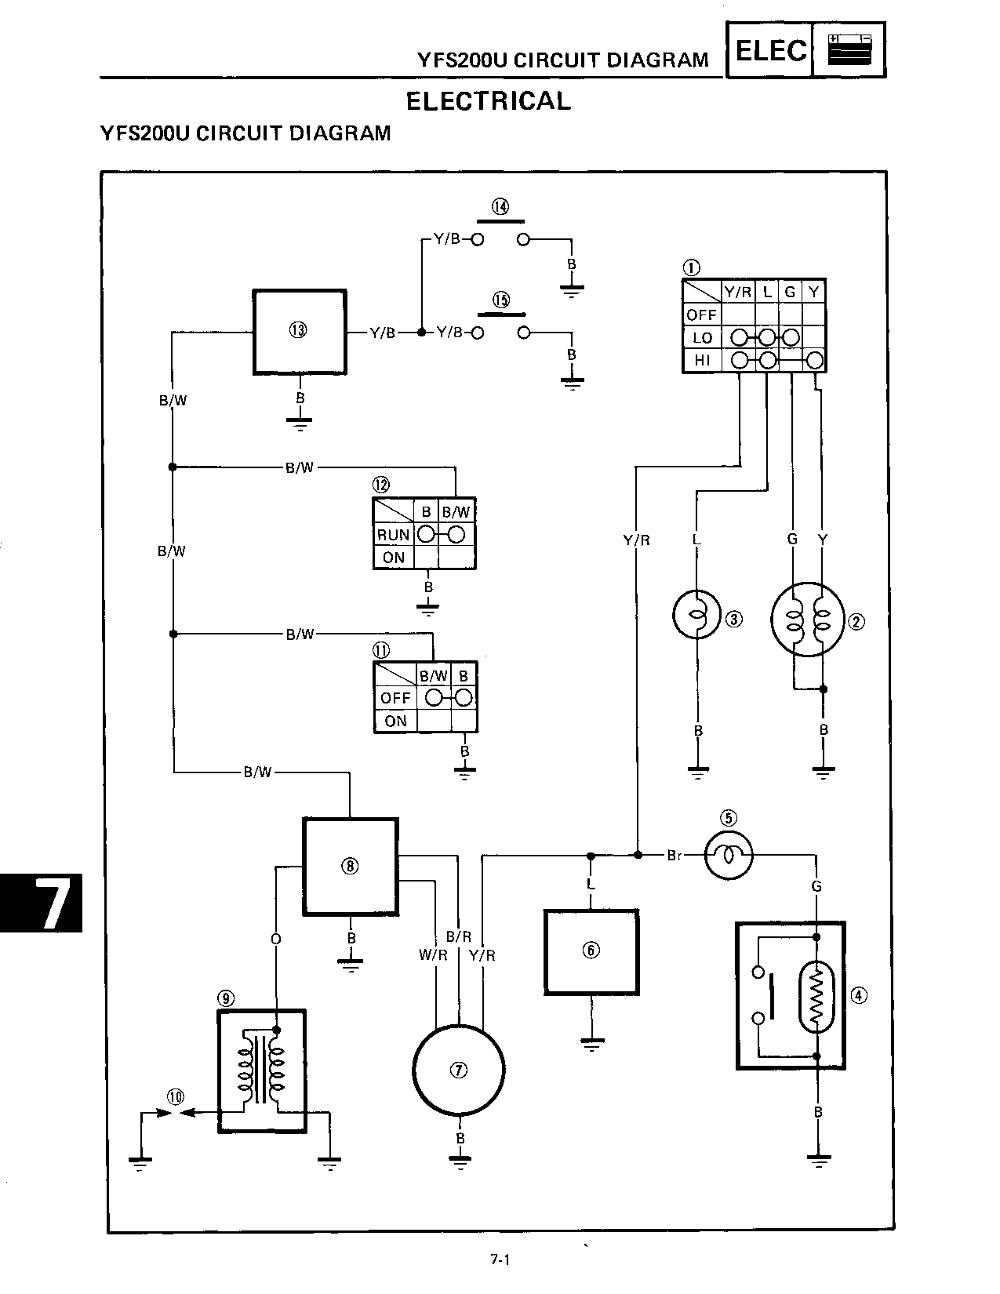 wiring yamaha blaster wiring diagram for 01 yfs200r full version hd quality  01 yfs200r - okcwebdesigner.kinggo.fr  okcwebdesigner kinggo fr